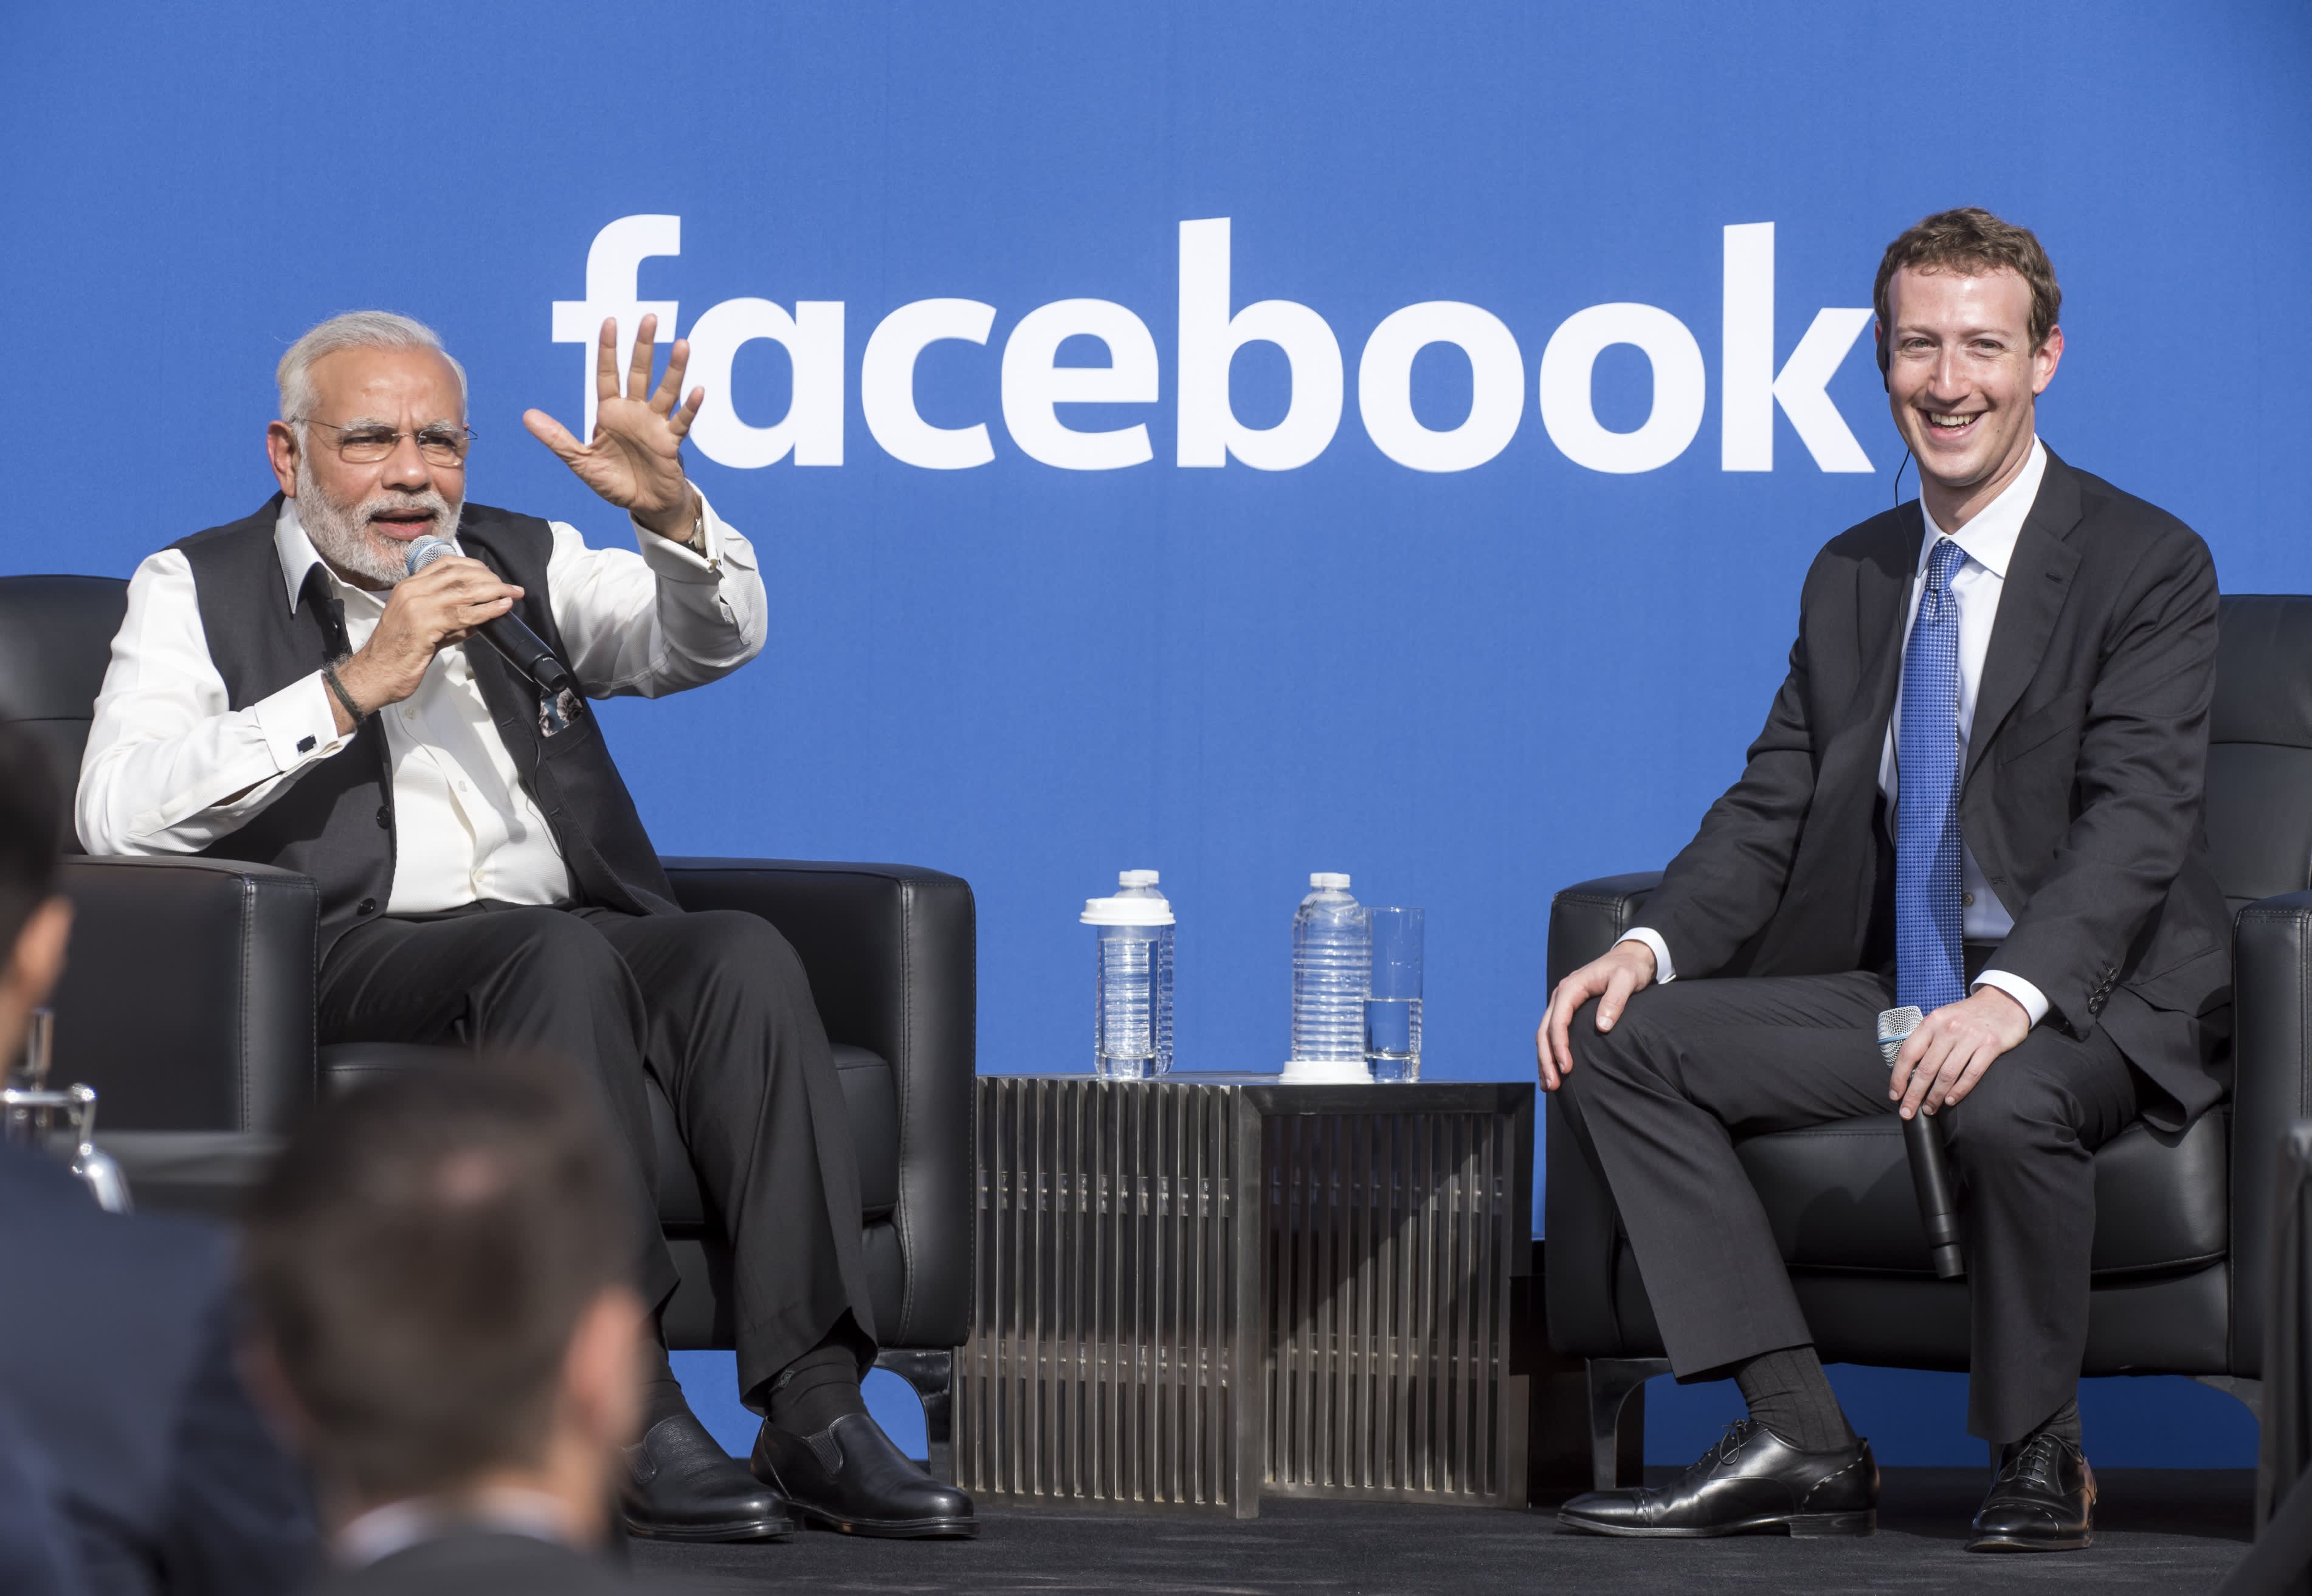 Facebook ramps up ad transparency ahead of indias 2019 general elections